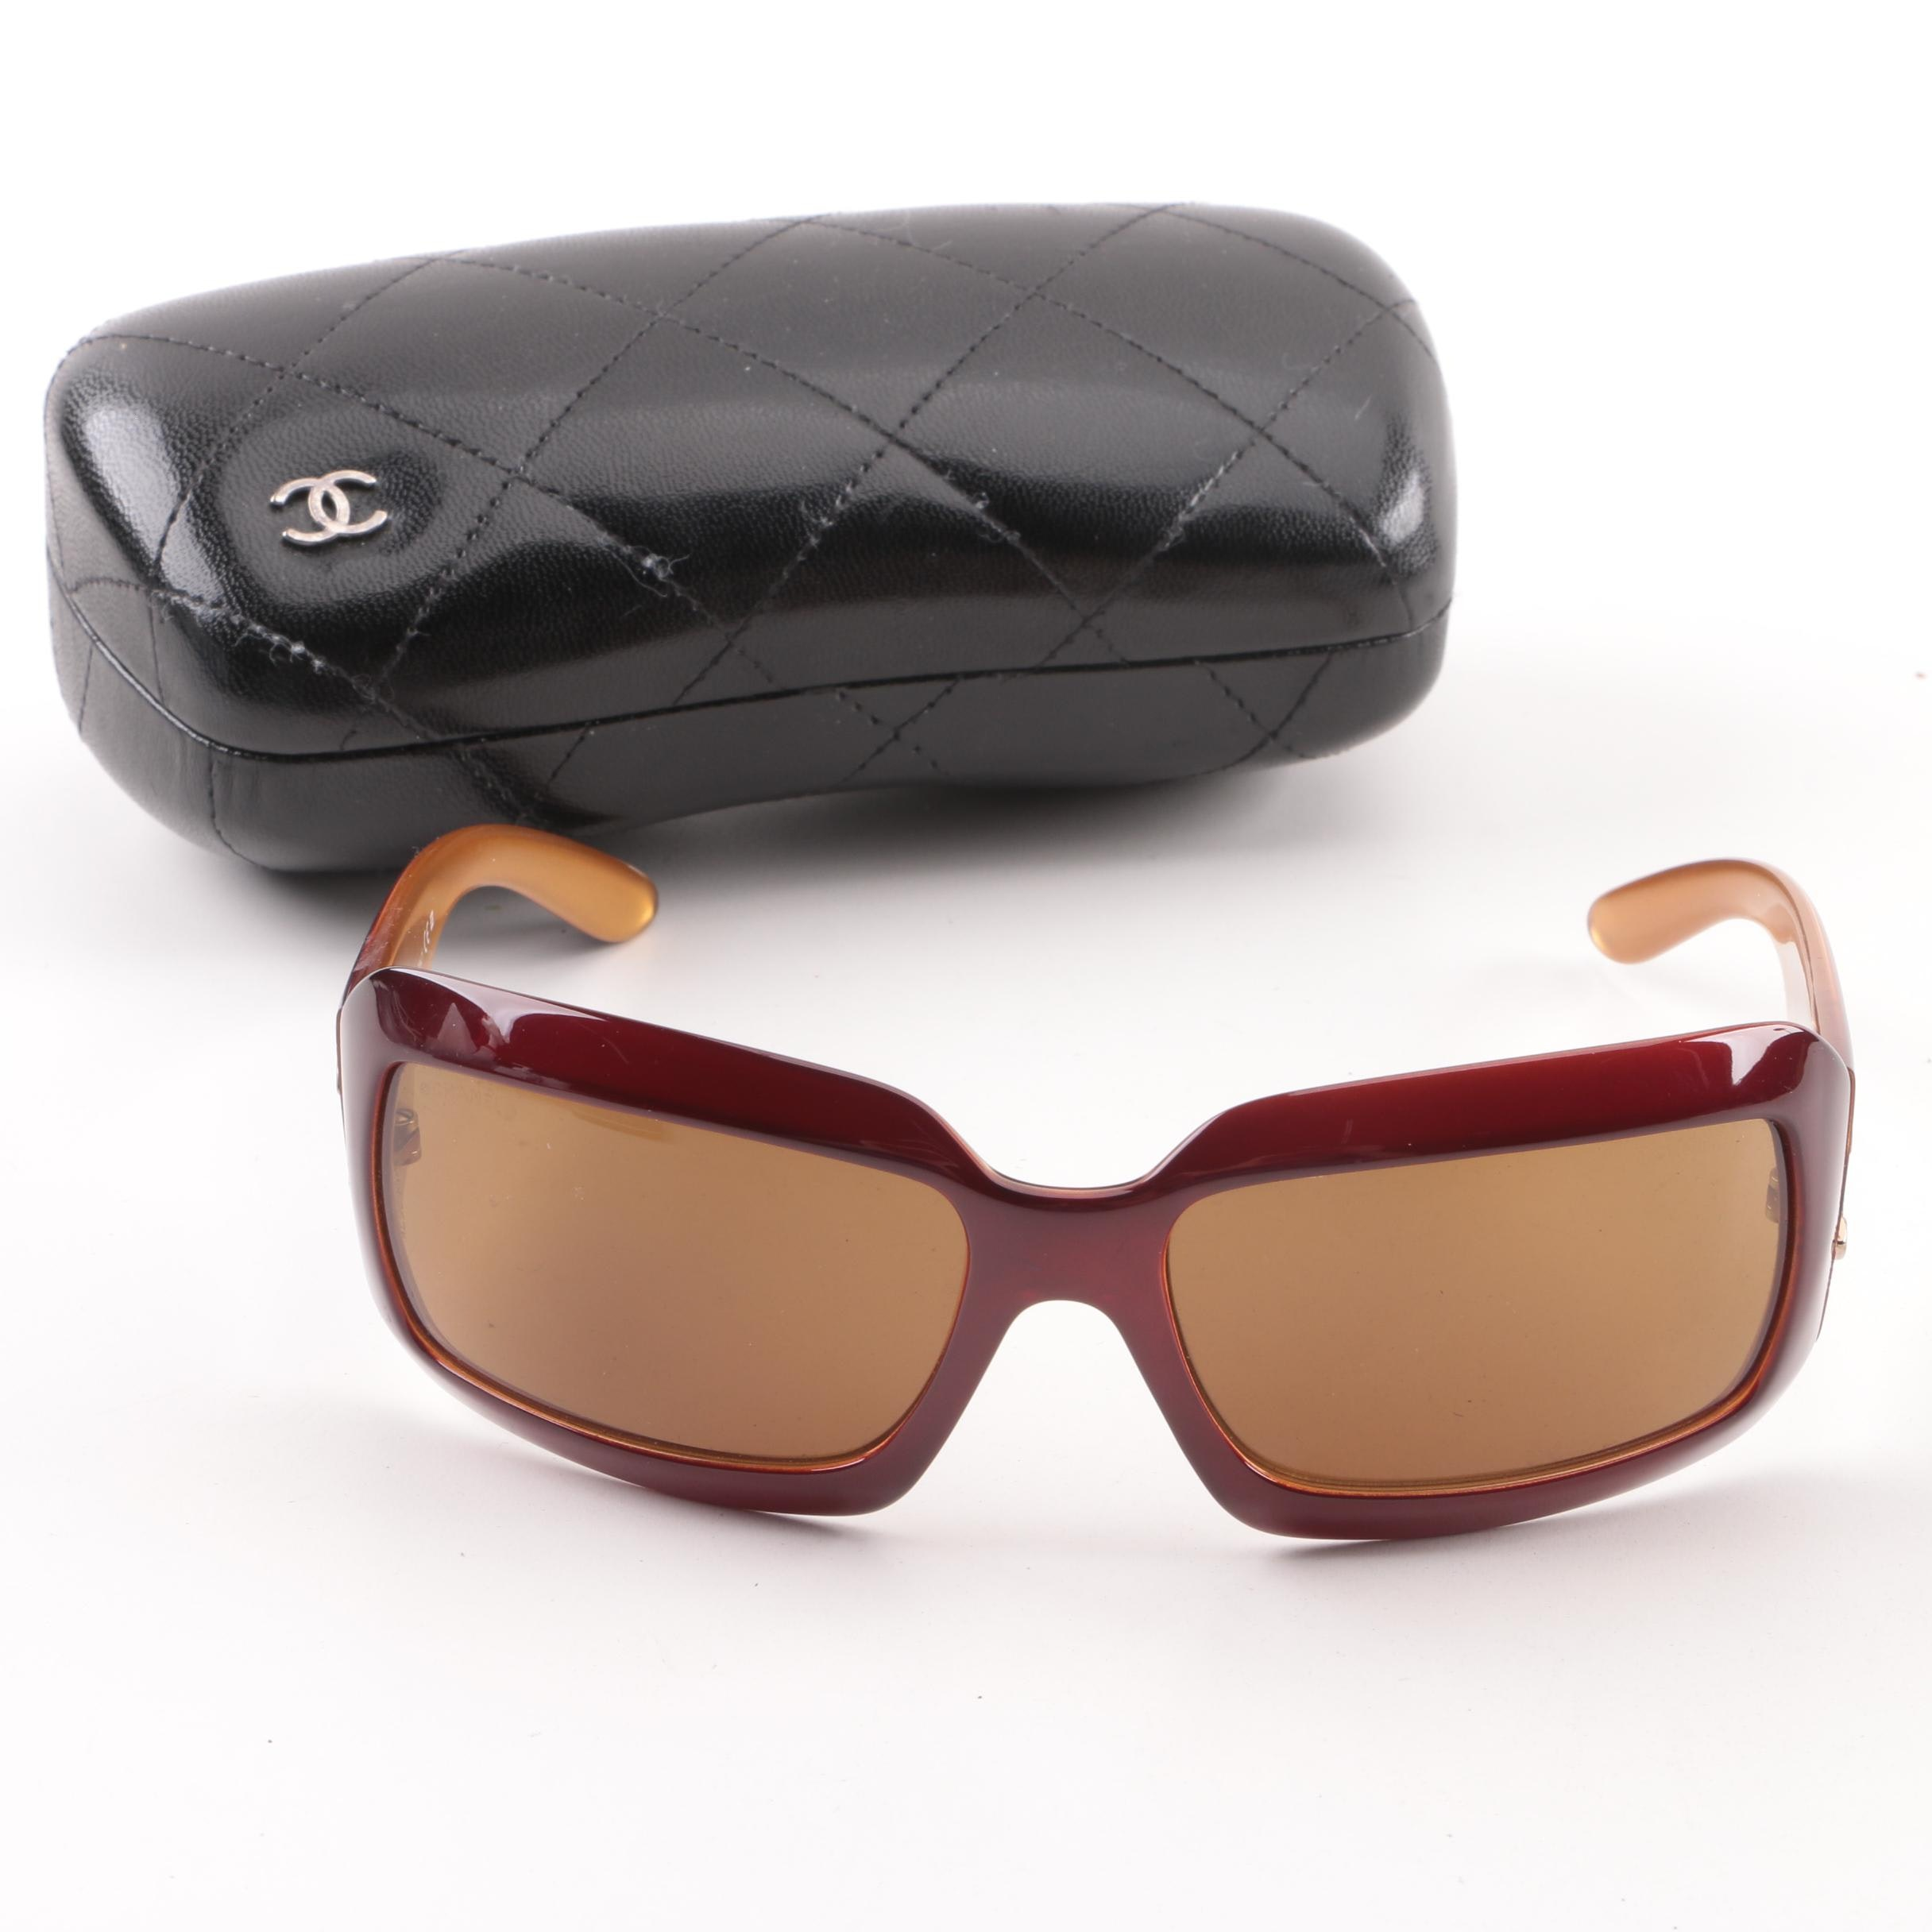 Chanel 6022-Q Wrap Sunglasses with Case